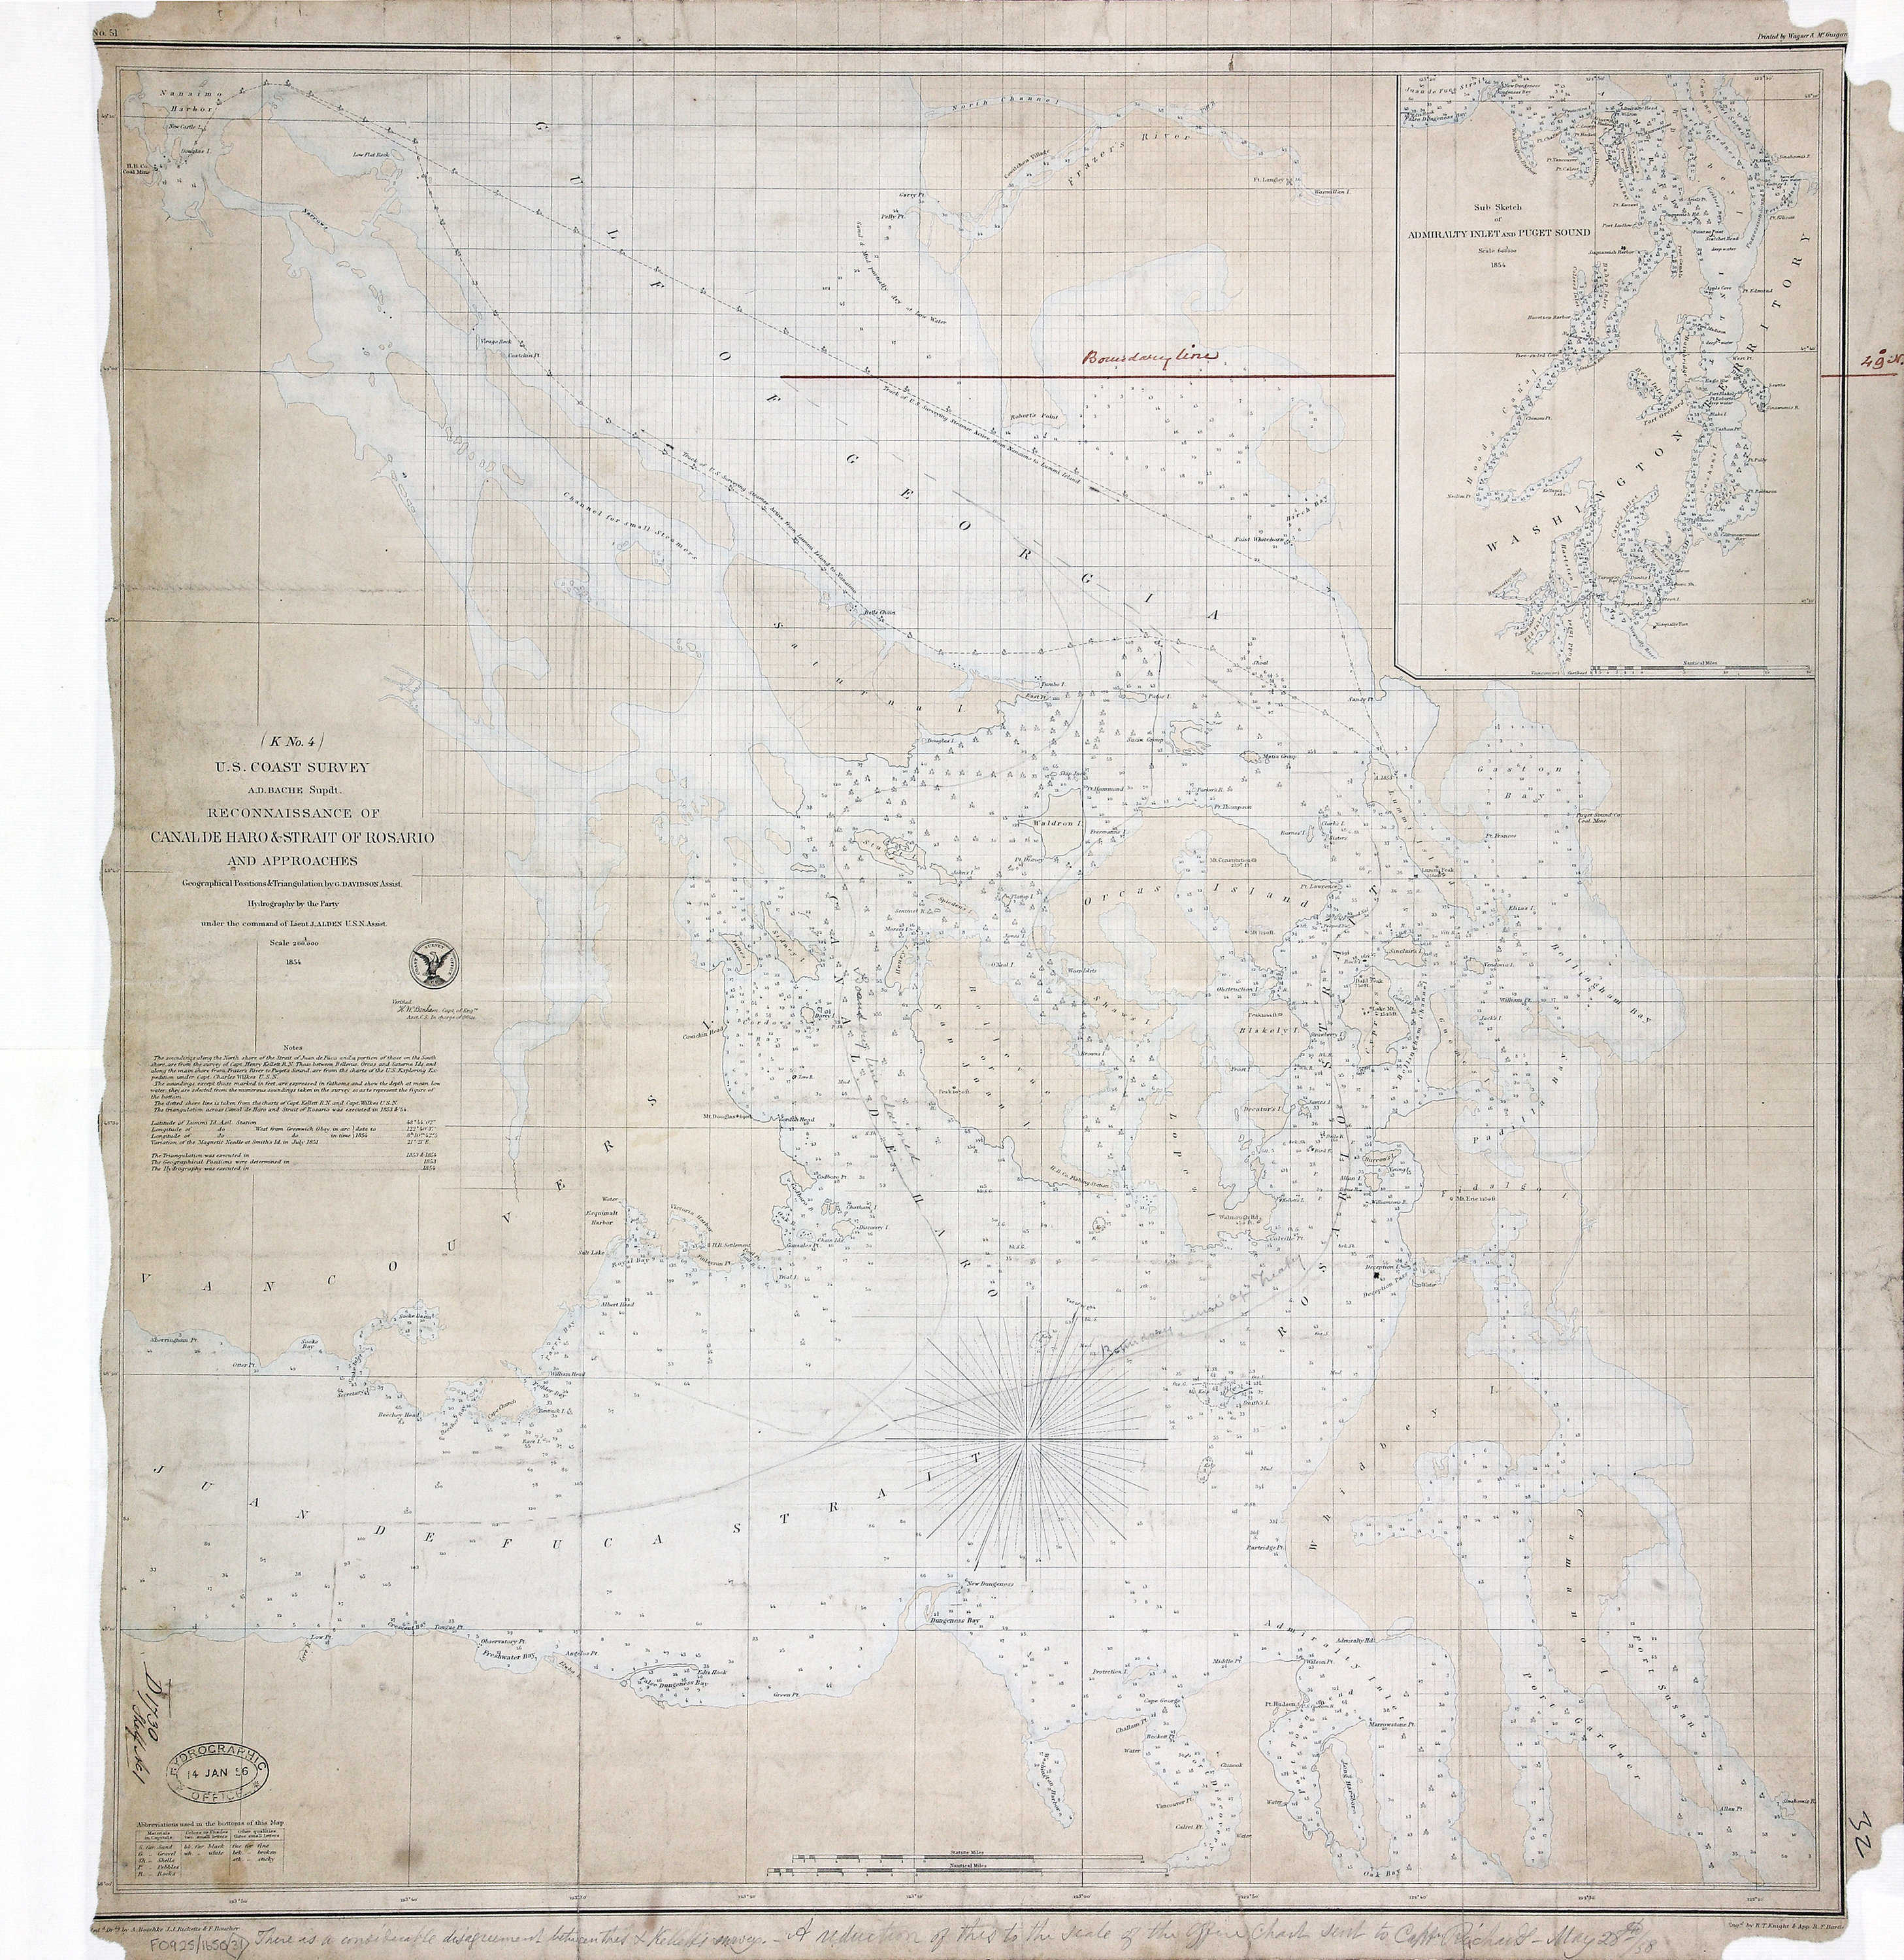 San Juan Water Boundary (Arbitration) : list of maps sent to Admiral Prevost at Berlin on the 12th June 1872 [map 31]